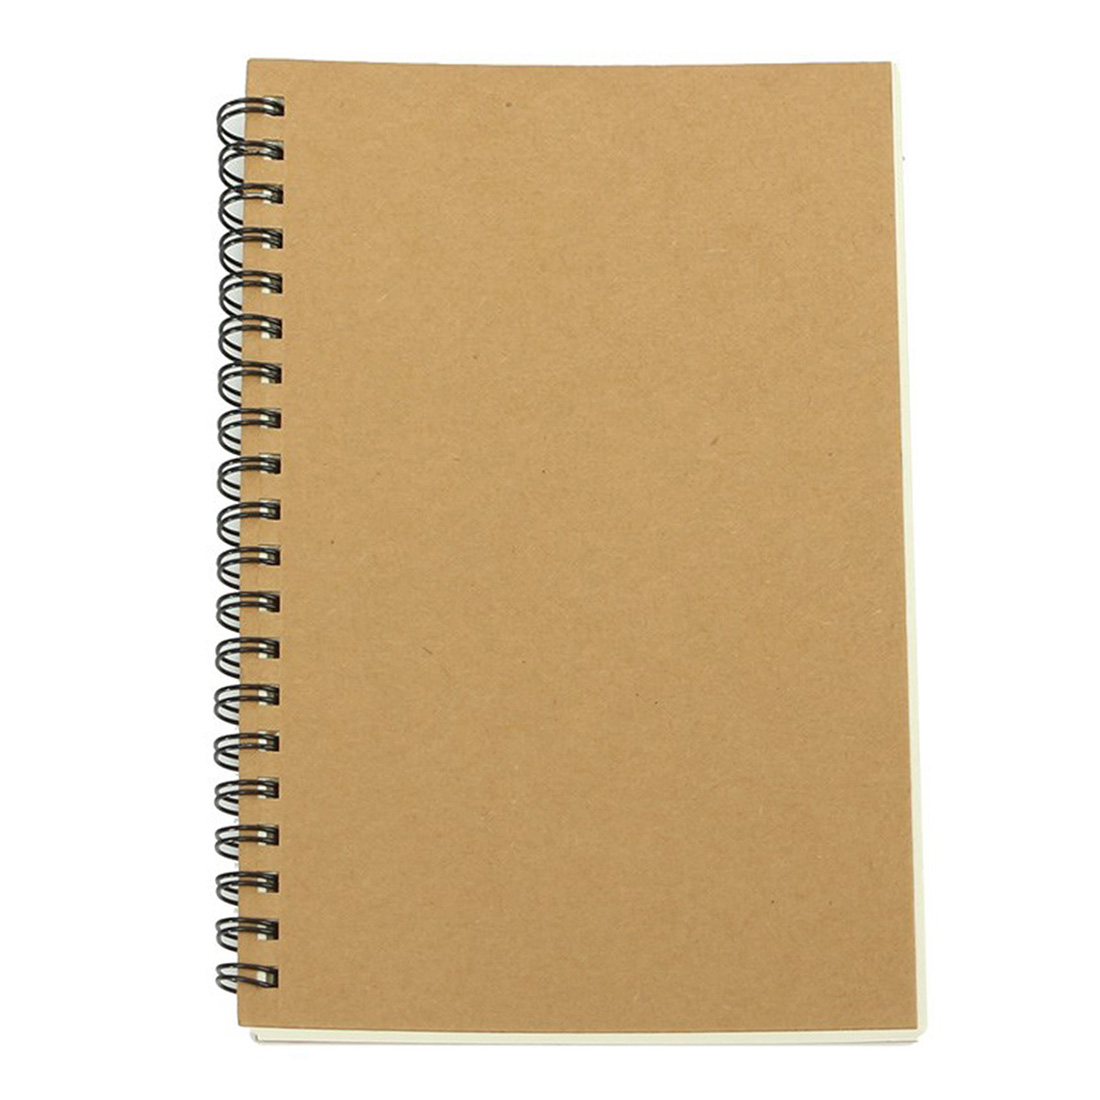 BLEL Retro Kraft Coil Sketch Sketchbooks Blank Notebook Creative School Stationery (Kraft paper and white)